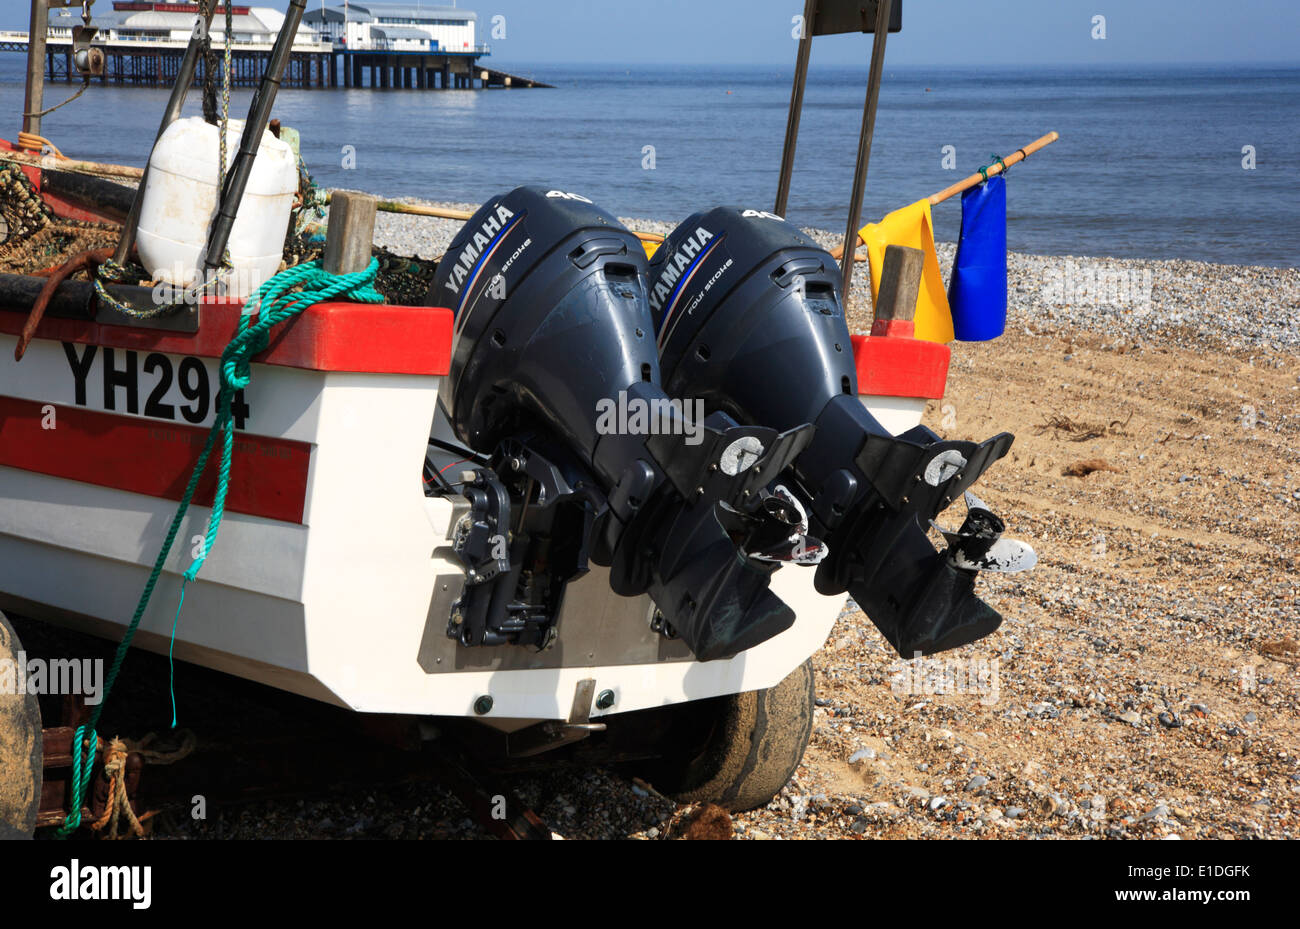 Twin outboard engines on an inshore fishing boat at Cromer, Norfolk, England, United Kingdom. - Stock Image